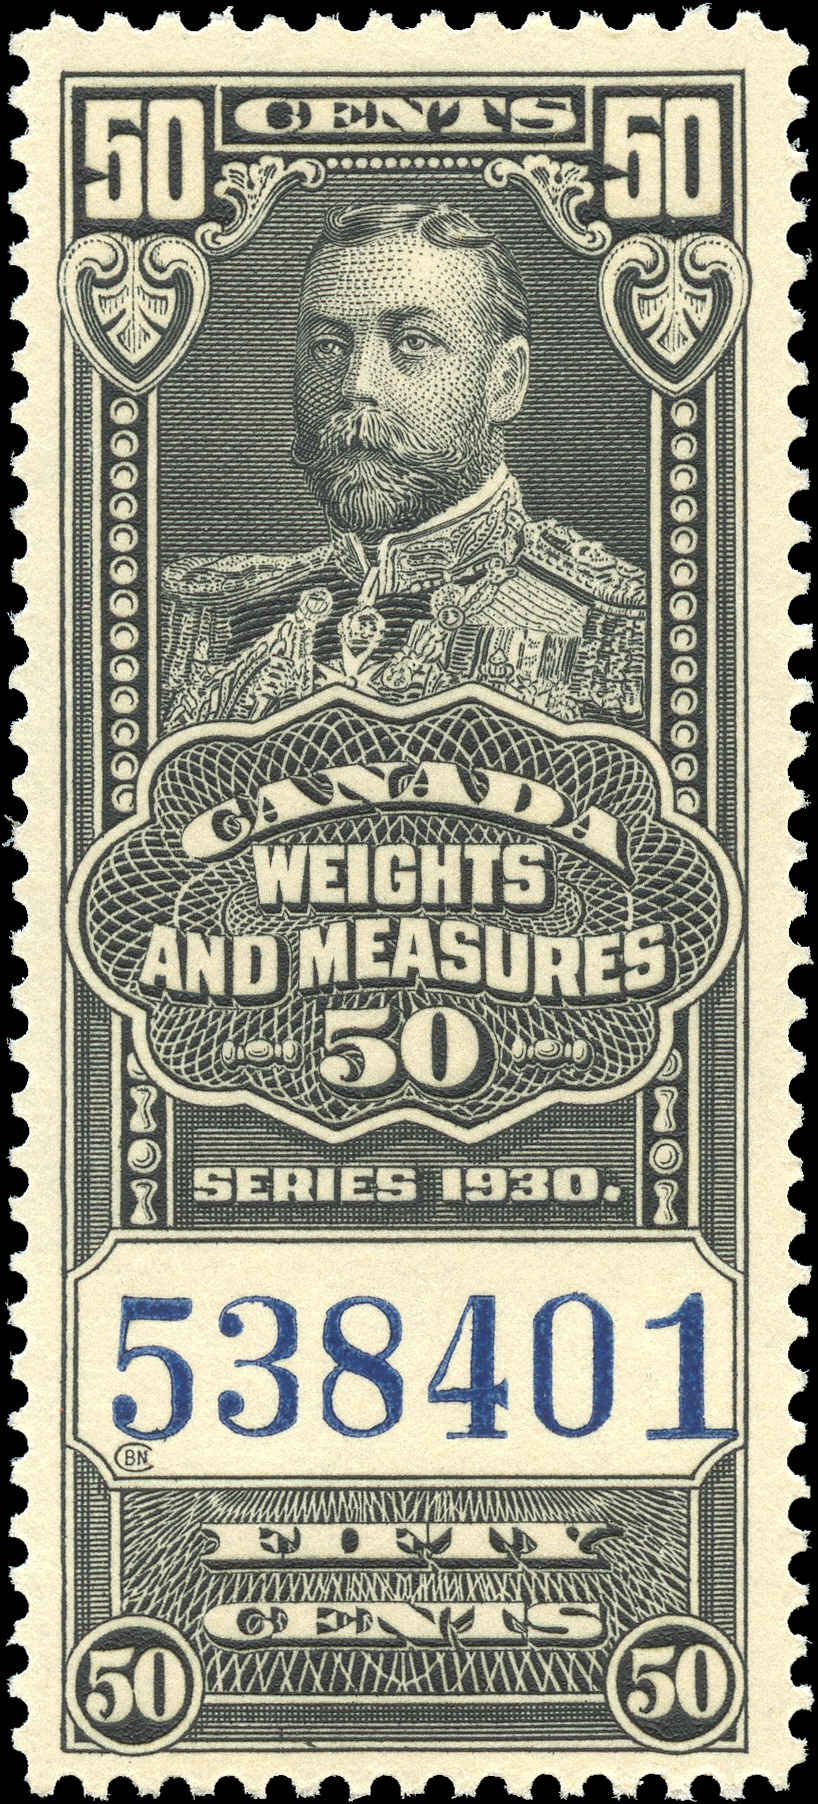 Canada #FWM65, Revenue Stamp, F-VF, MNH